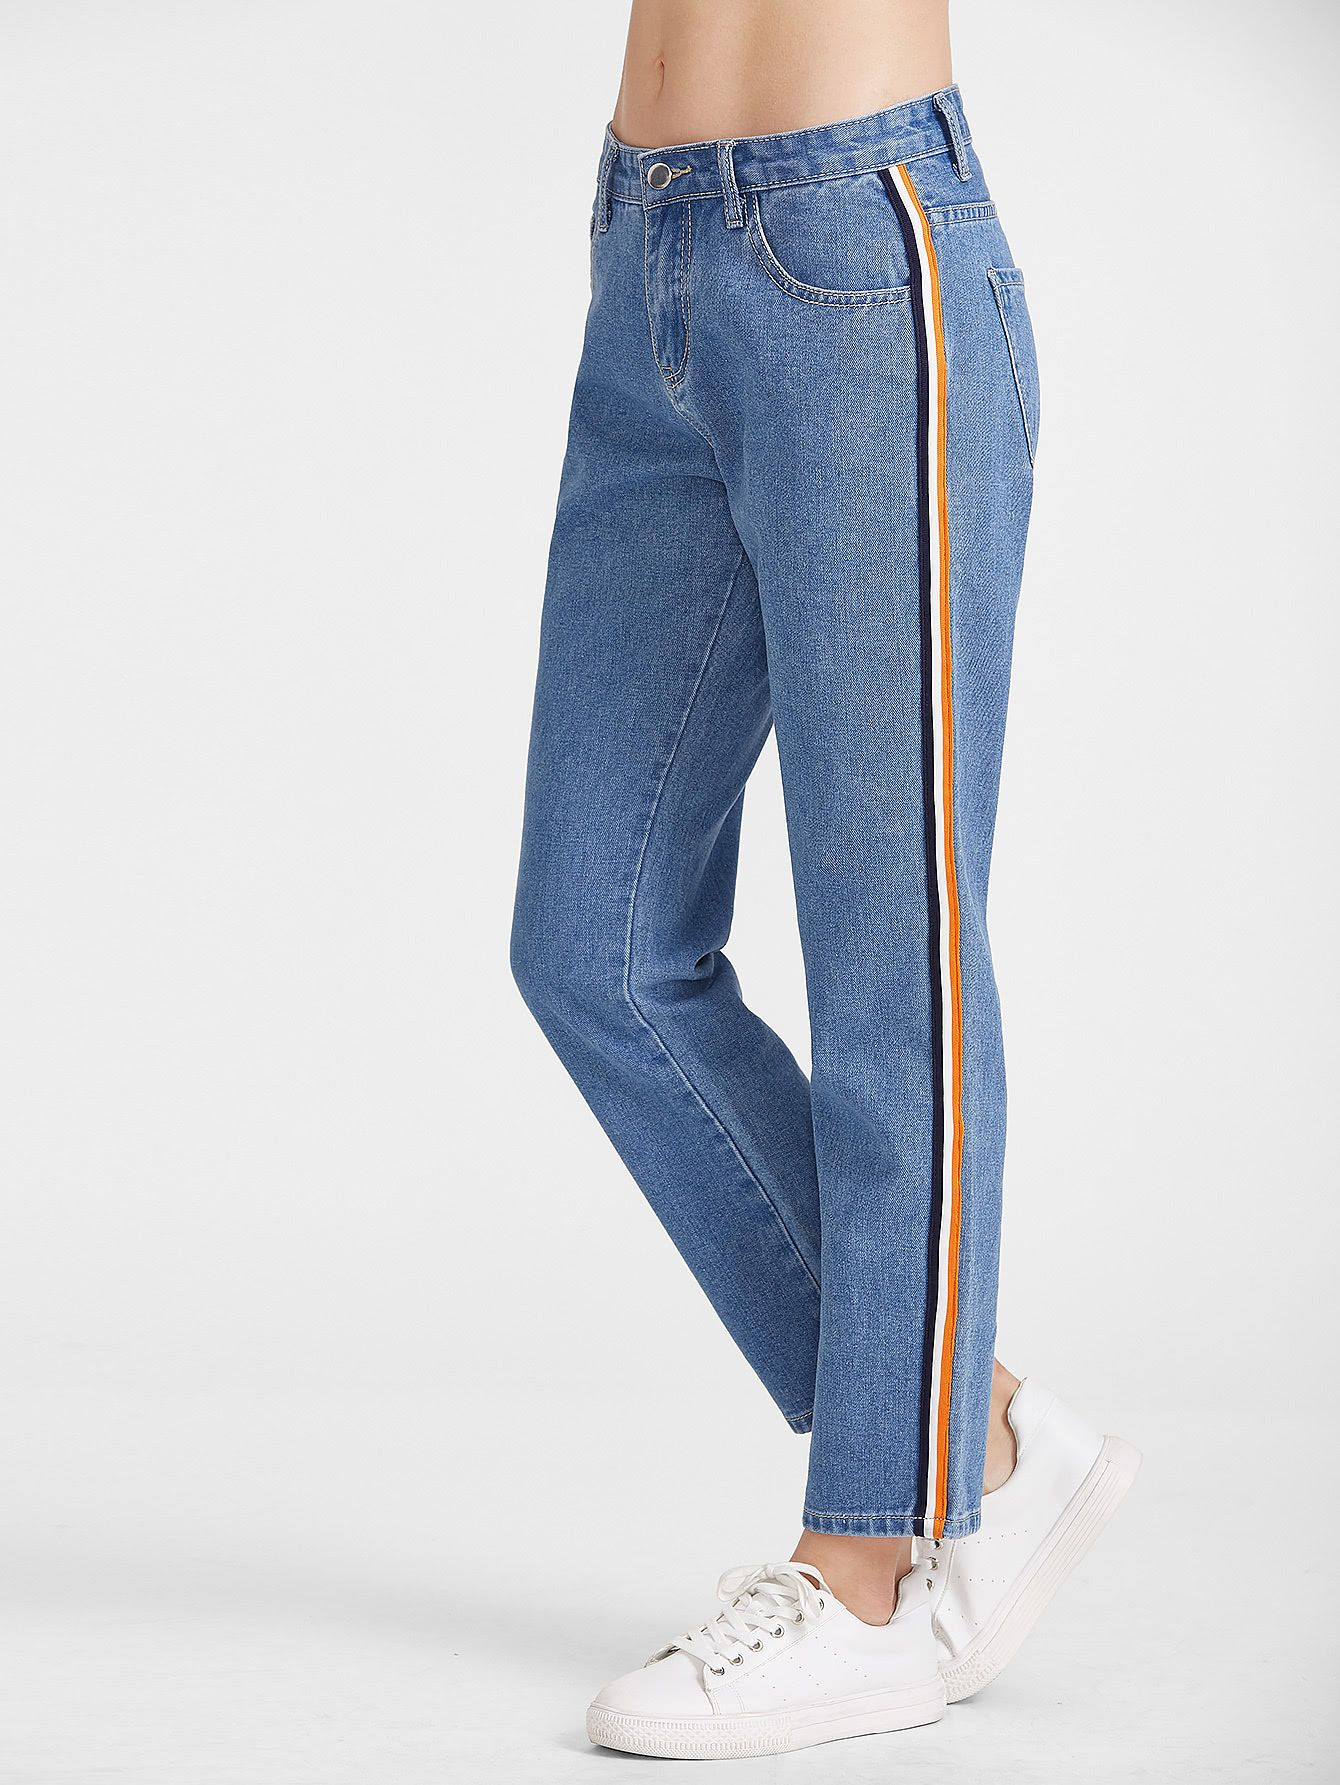 4dfb392da Online shopping for Side Striped Tape Straight Jeans from a great selection  of women s fashion clothing   more at MakeMeChic.COM.